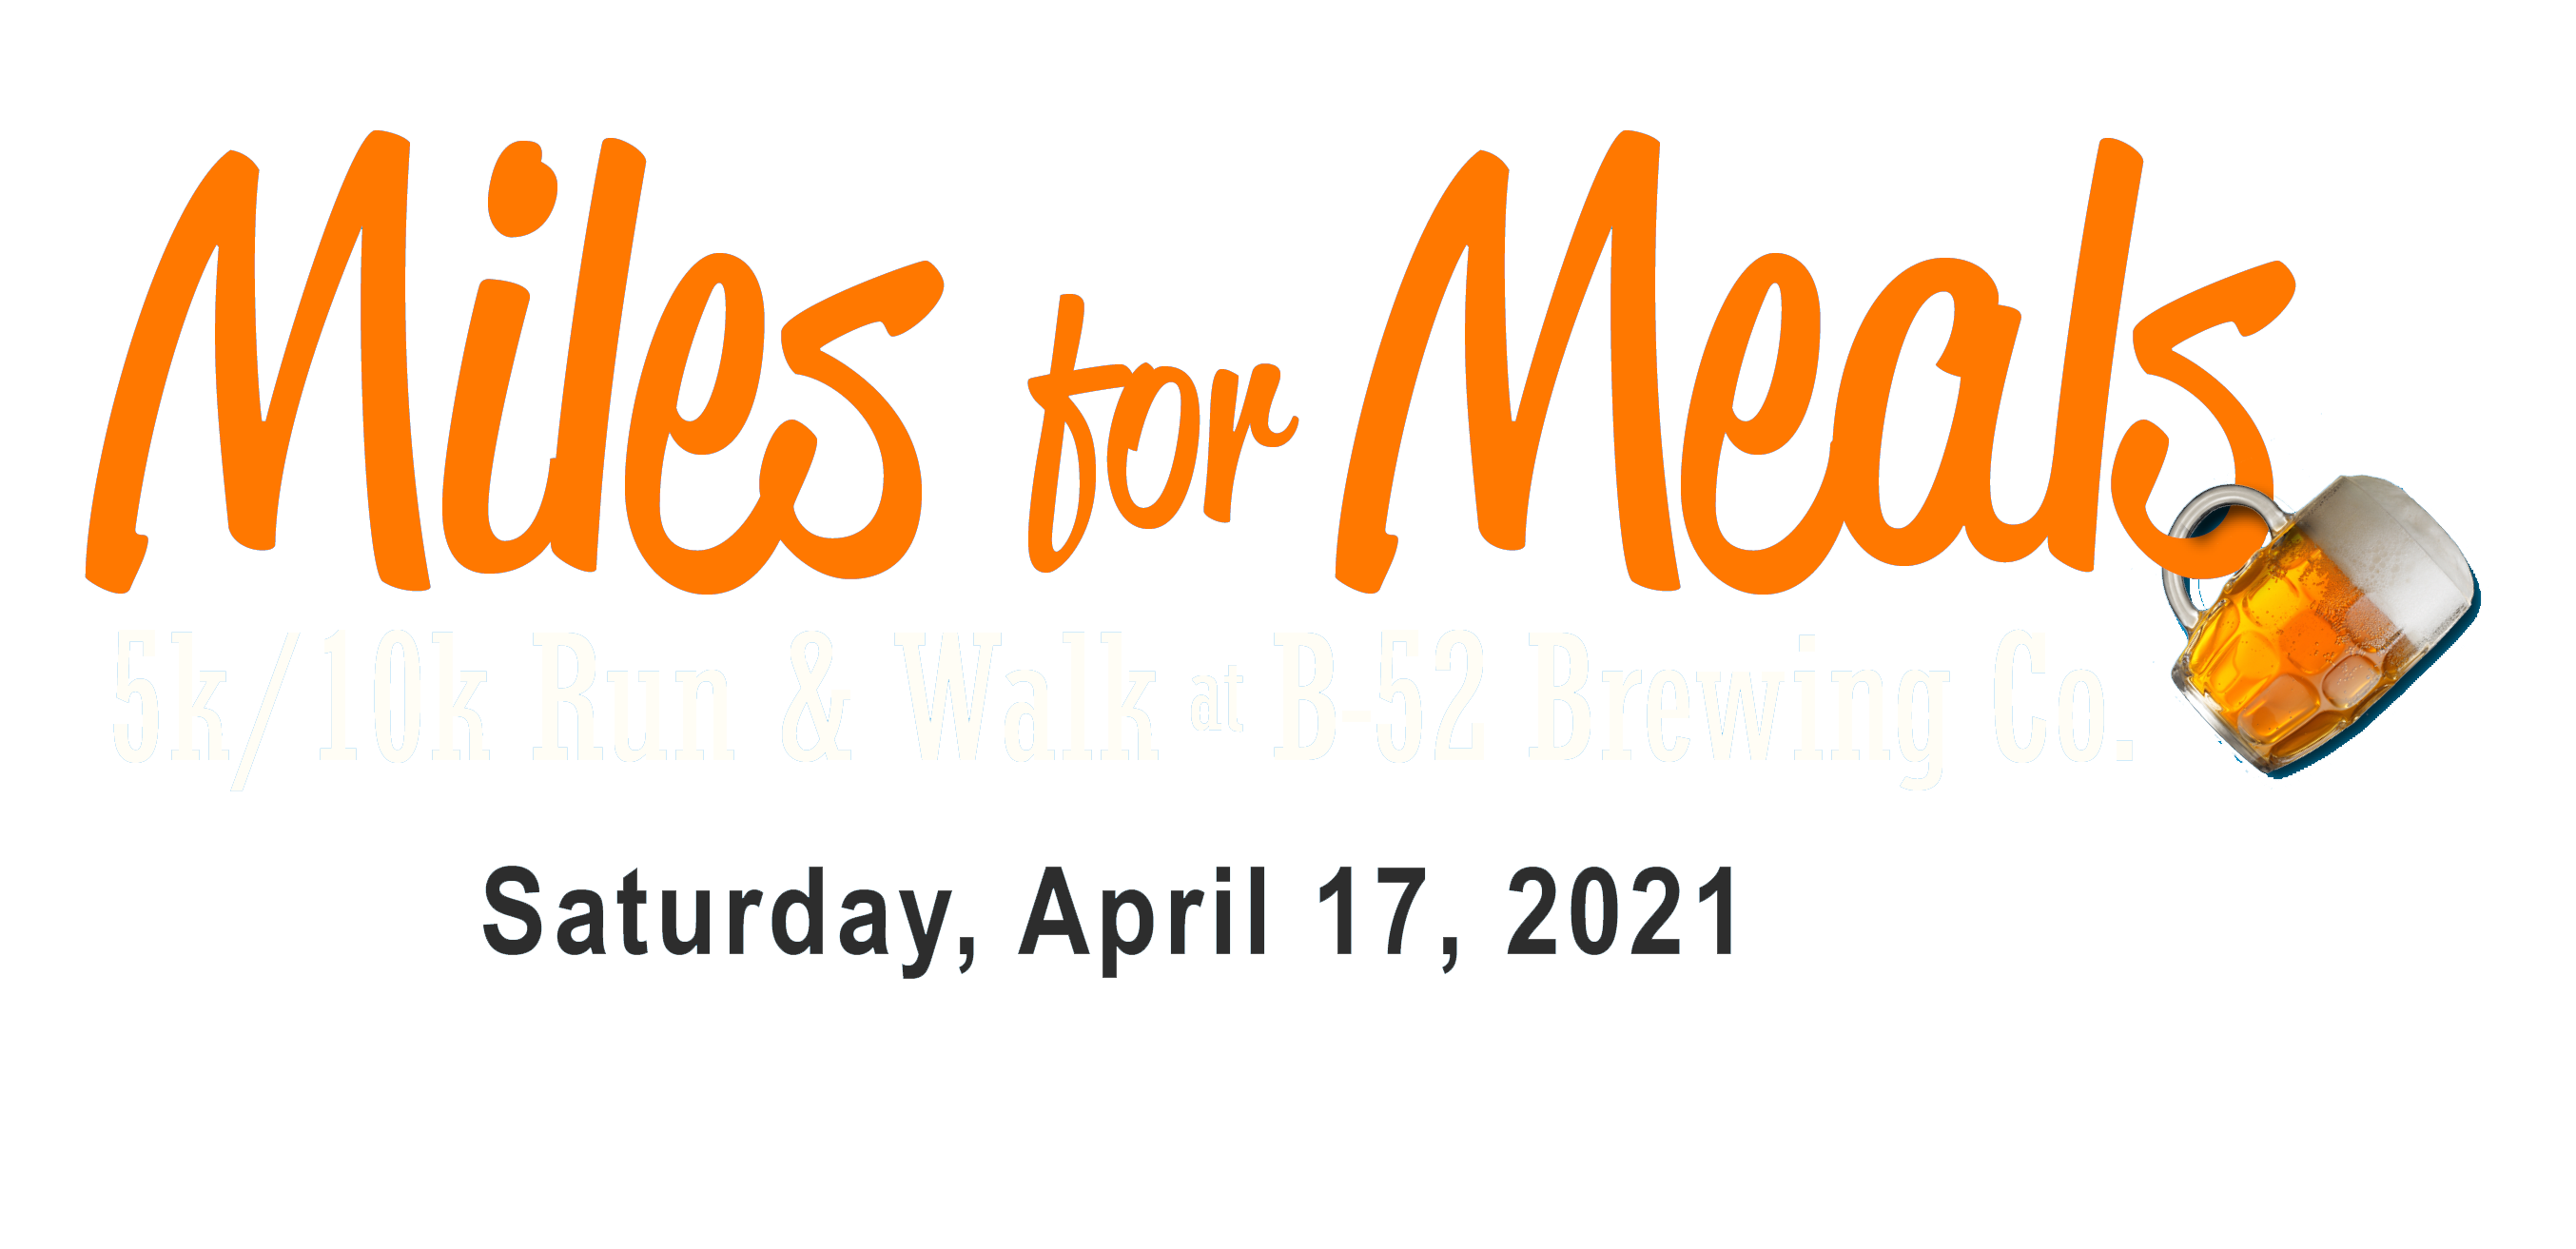 Meals on Wheels Montgomery County_Miles for Meals 2021